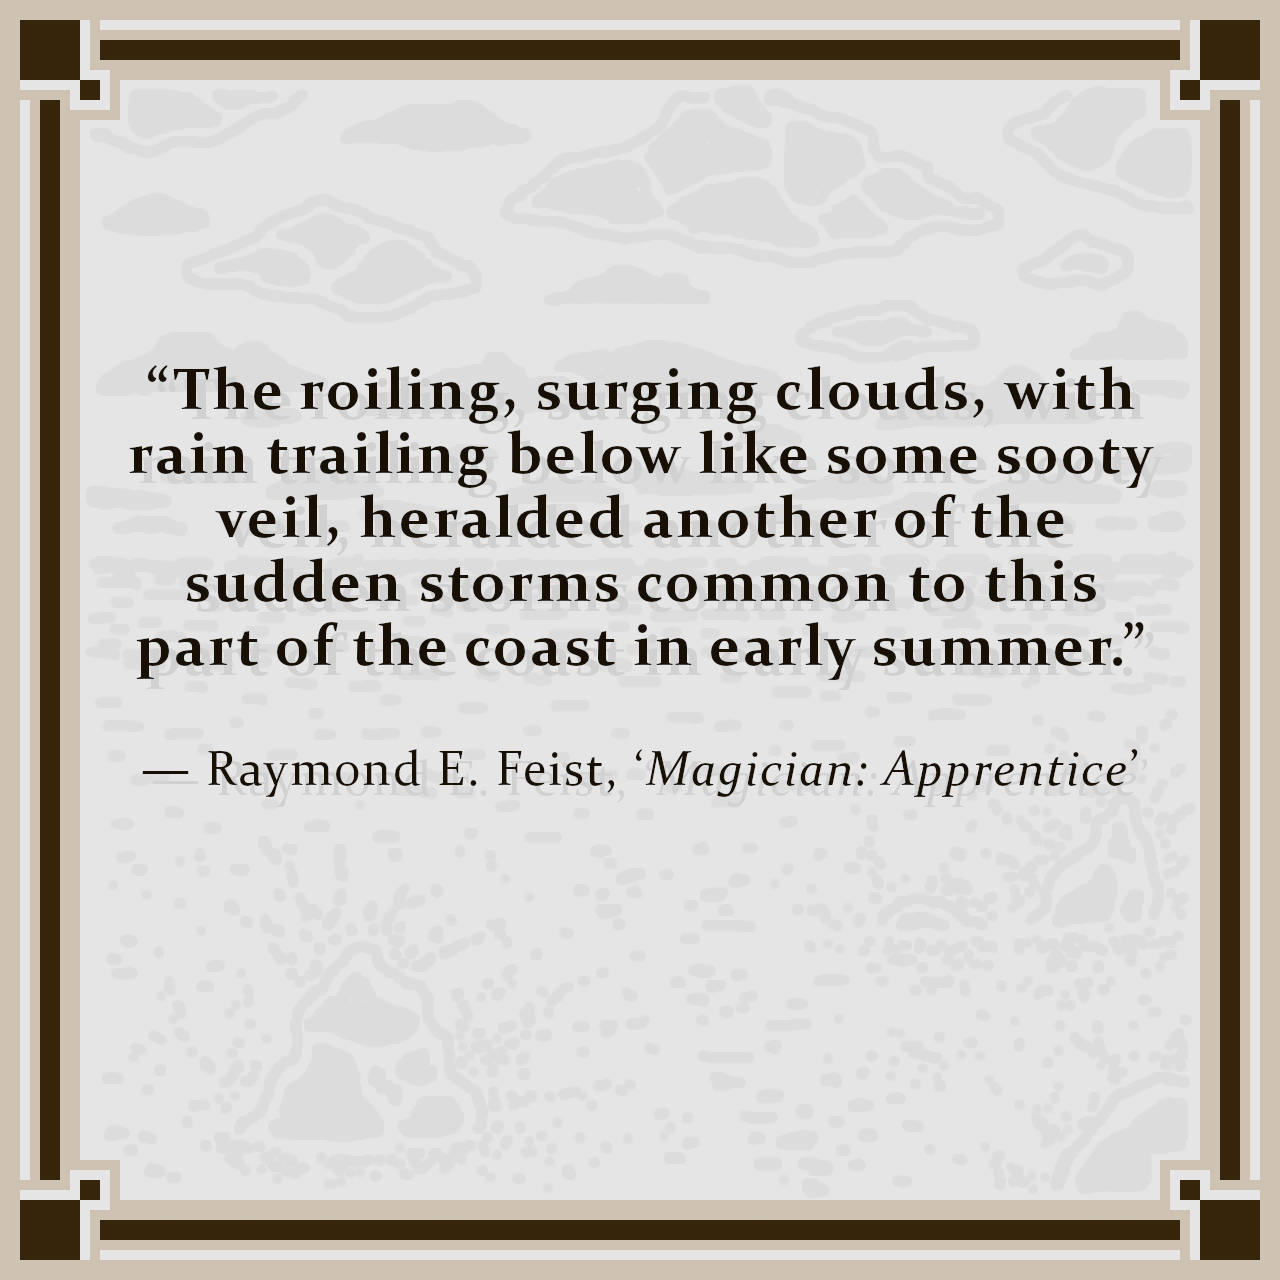 """""""The roiling, surging clouds, with rain trailing below like some sooty veil, heralded another of the sudden storms common to this part of the coast in early summer."""" — Raymond E. Feist, 'Magician: Apprentice'"""